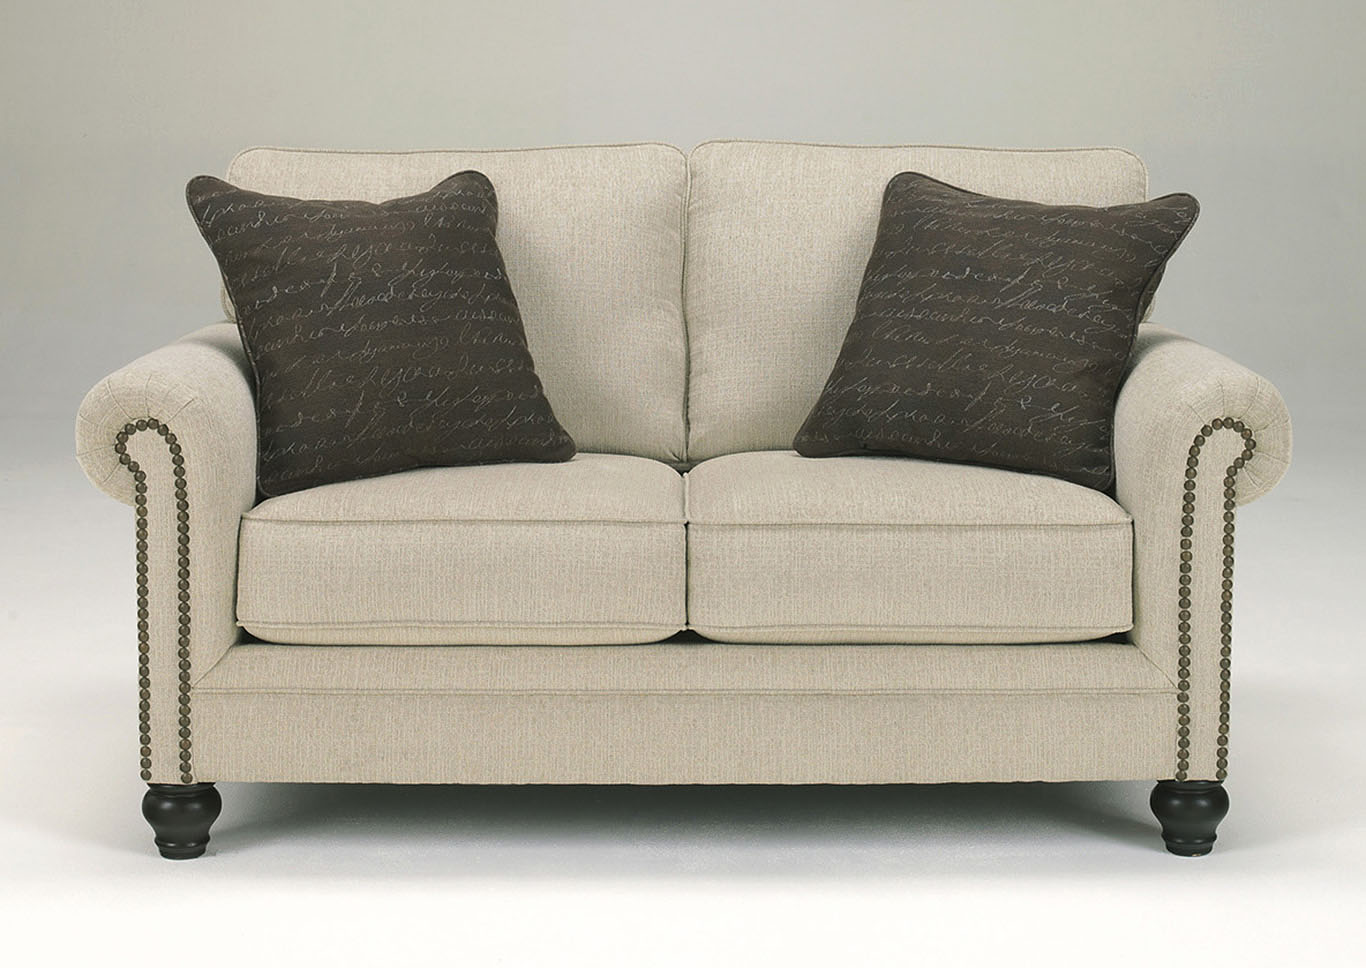 Milari Linen Loveseat,ABF Signature Design by Ashley